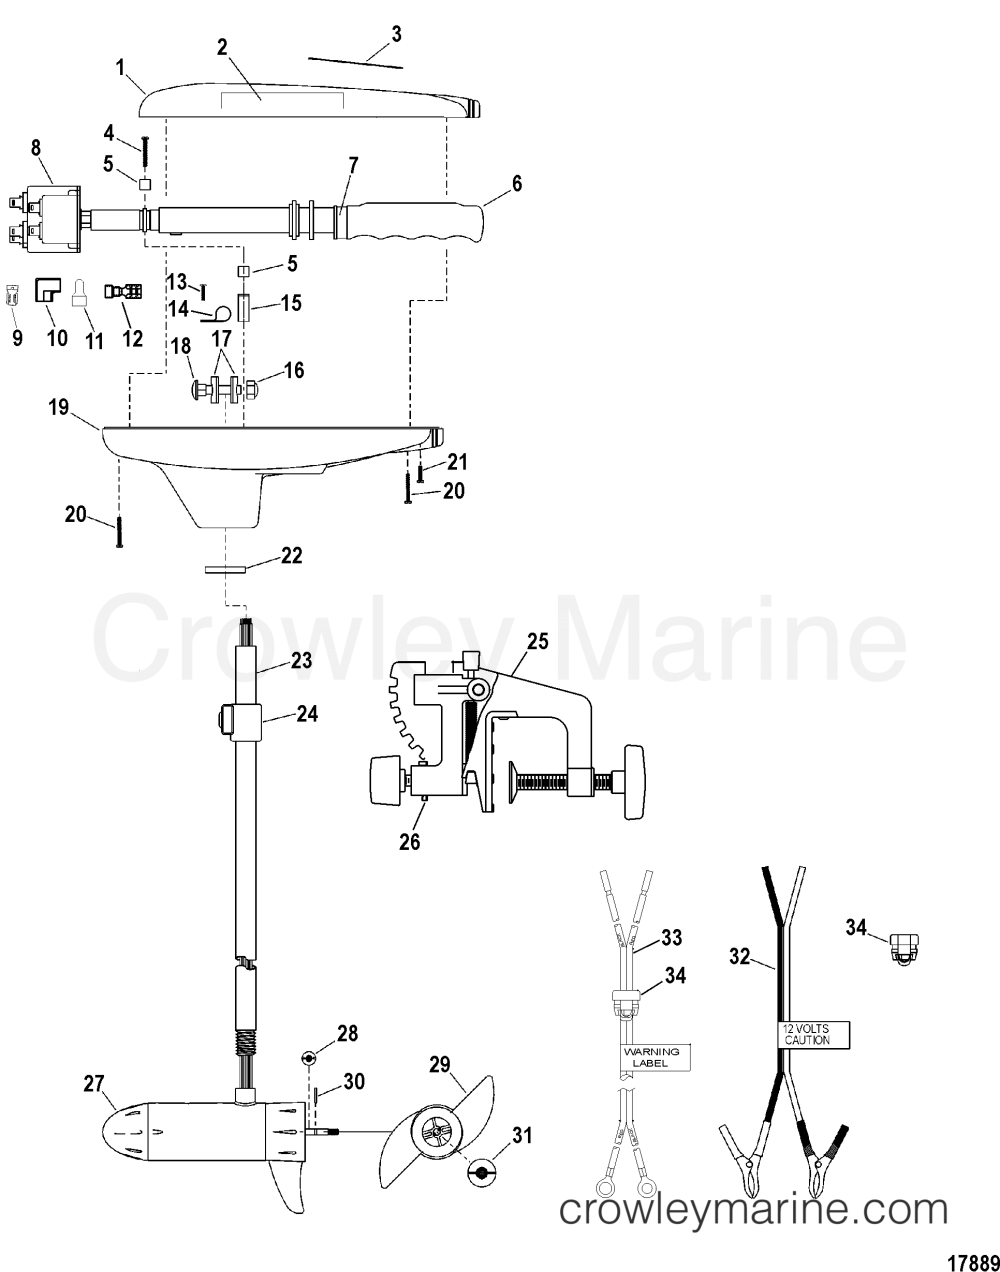 medium resolution of 12 24v trolling motor wiring diagram johnson wiring diagrams scematic 12 volt boat wiring diagram johnson trolling motor 12 volt wiring diagram